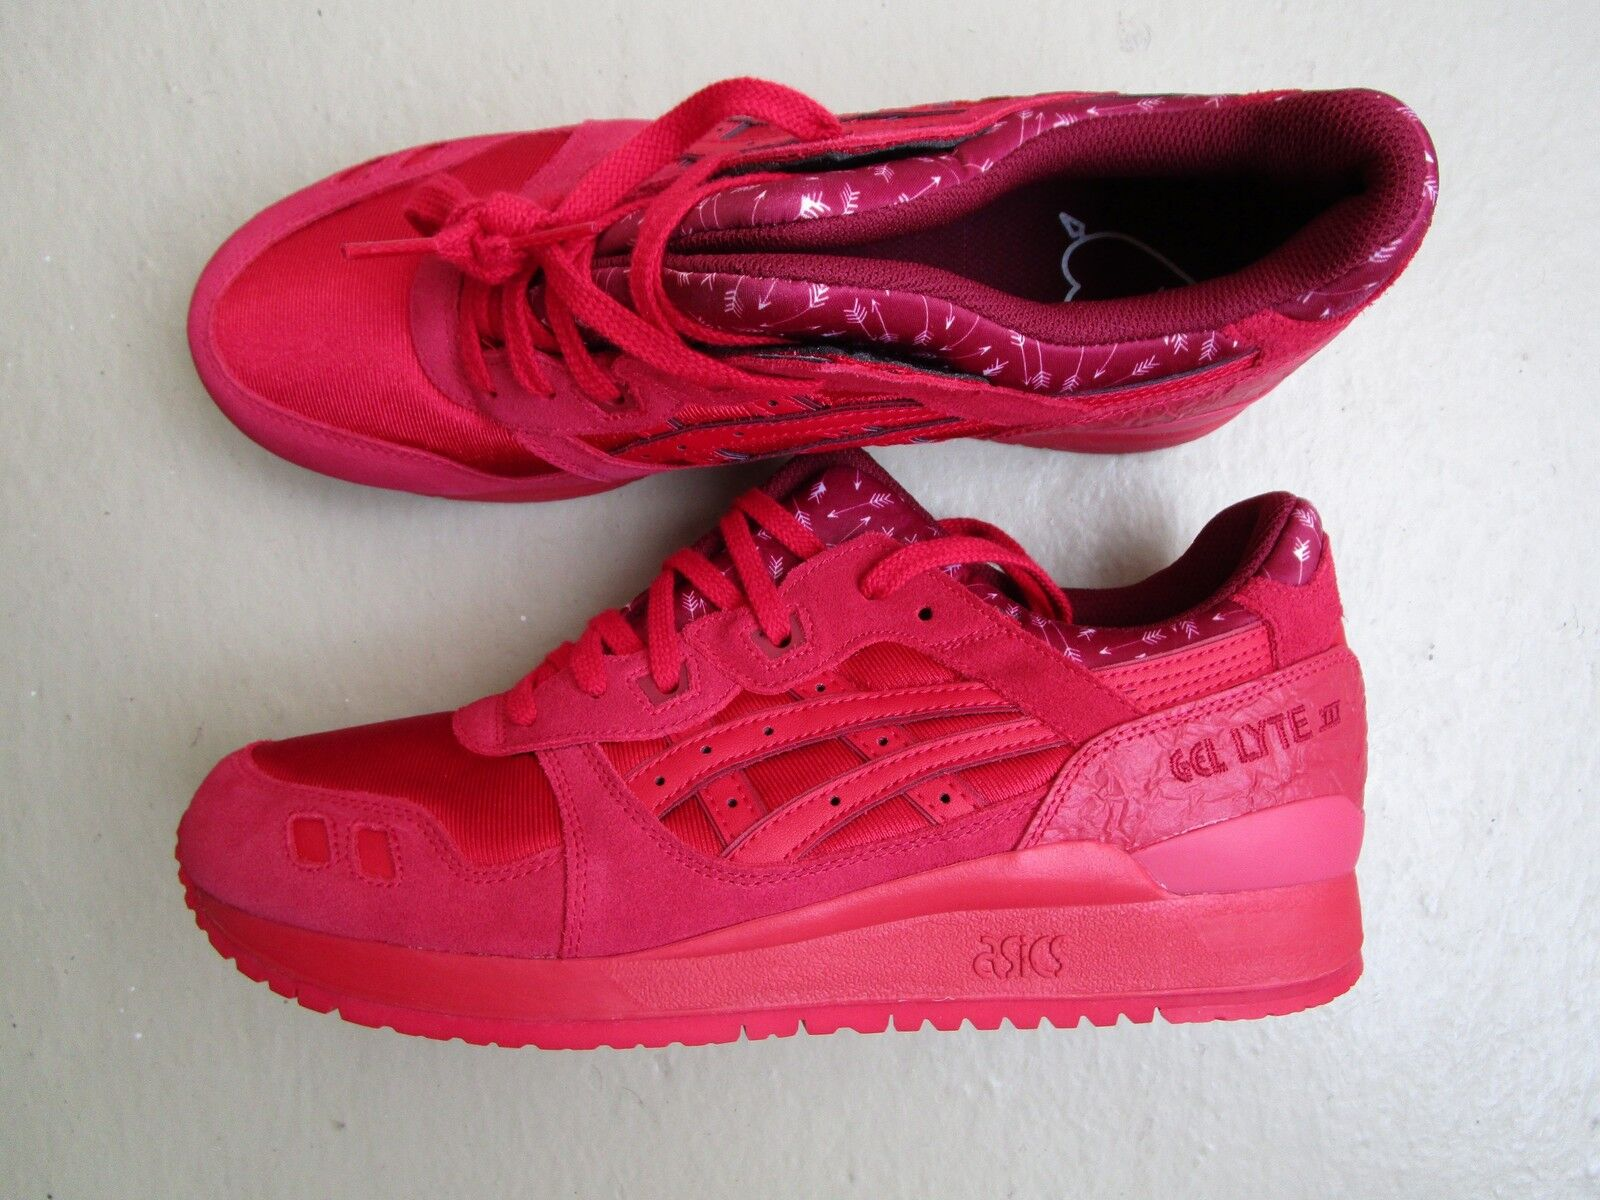 Asics Gel Lyte III 3 45  Valentine's Pack  Red Red